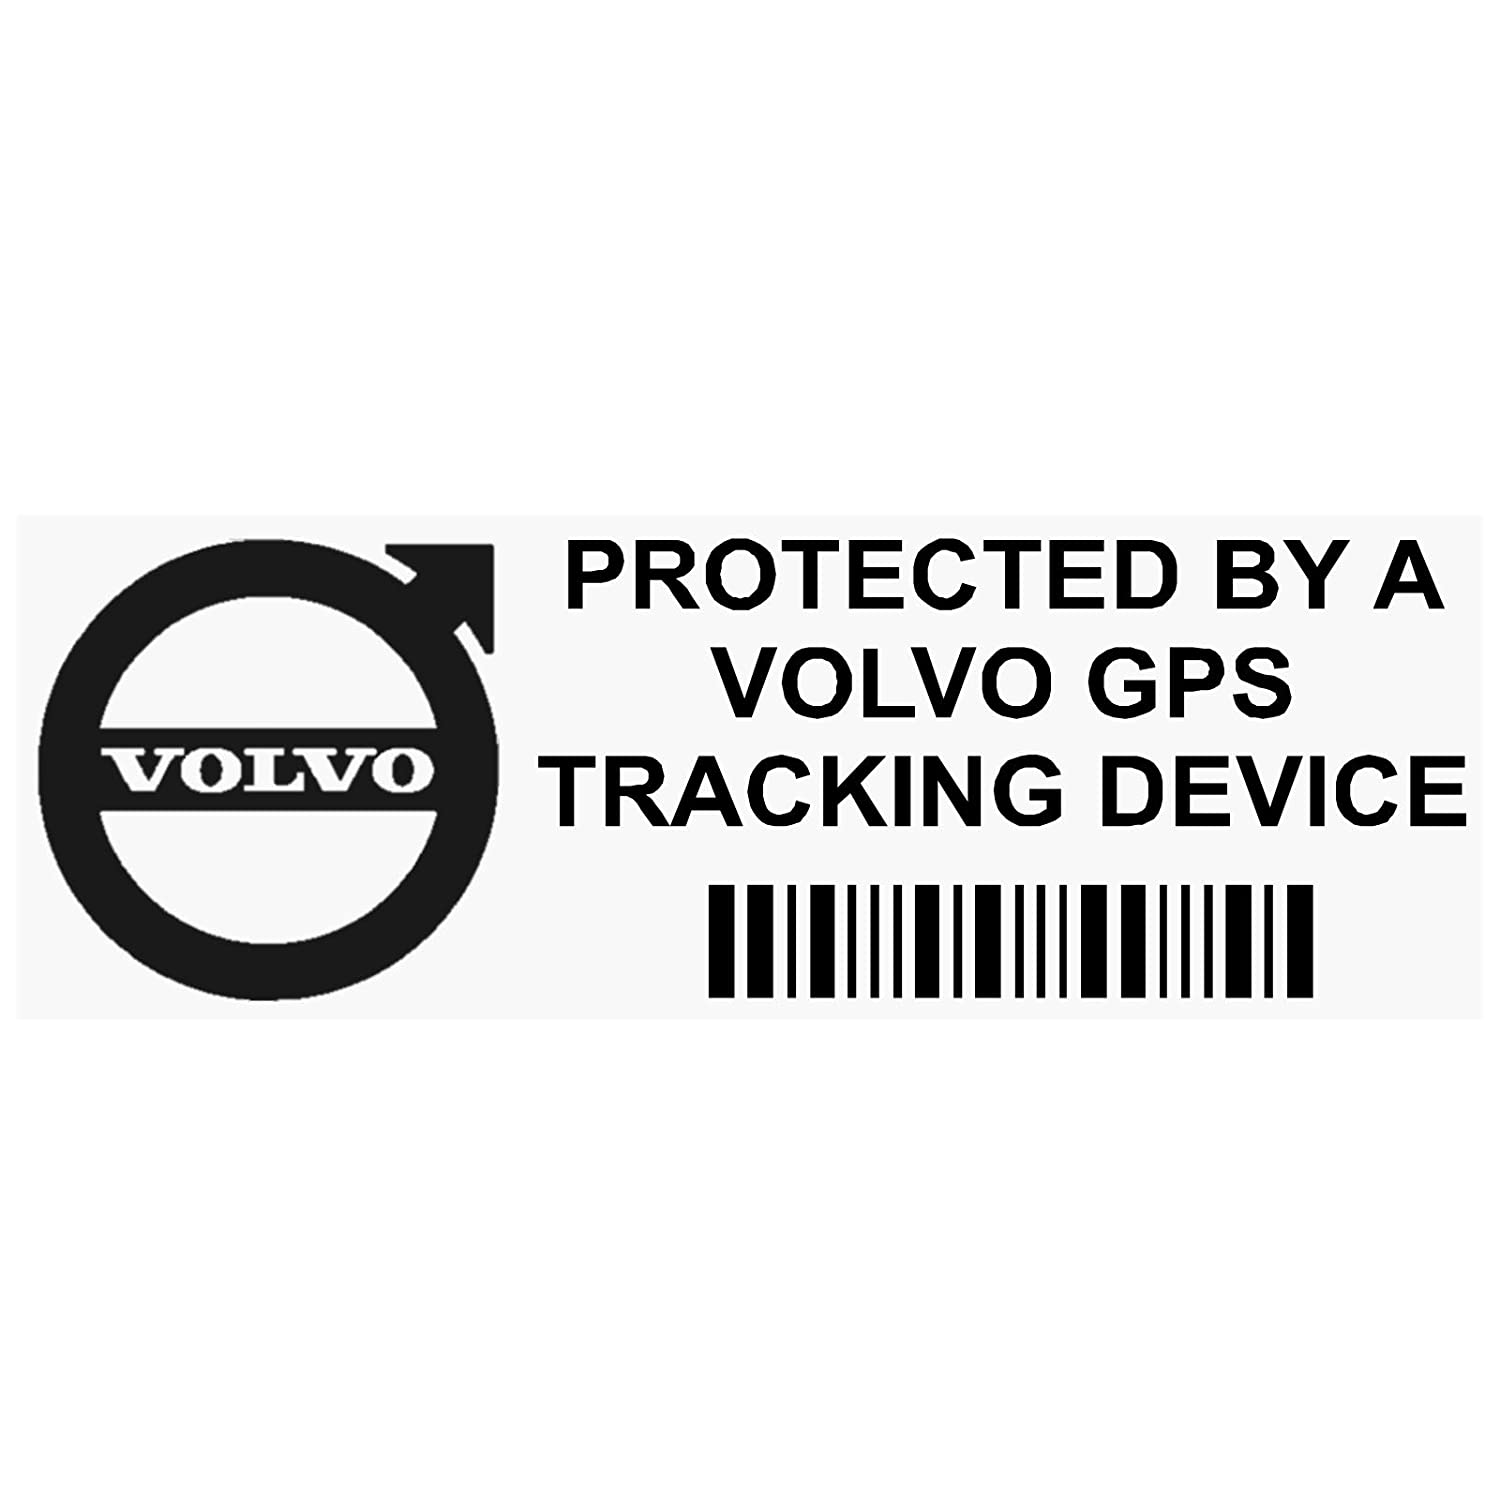 Platinum Place 5 x PPVOLVOGPSBLK GPS BLACK Tracking Device Security WINDOW Stickers 87x30mm-Car, Van Alarm Tracker